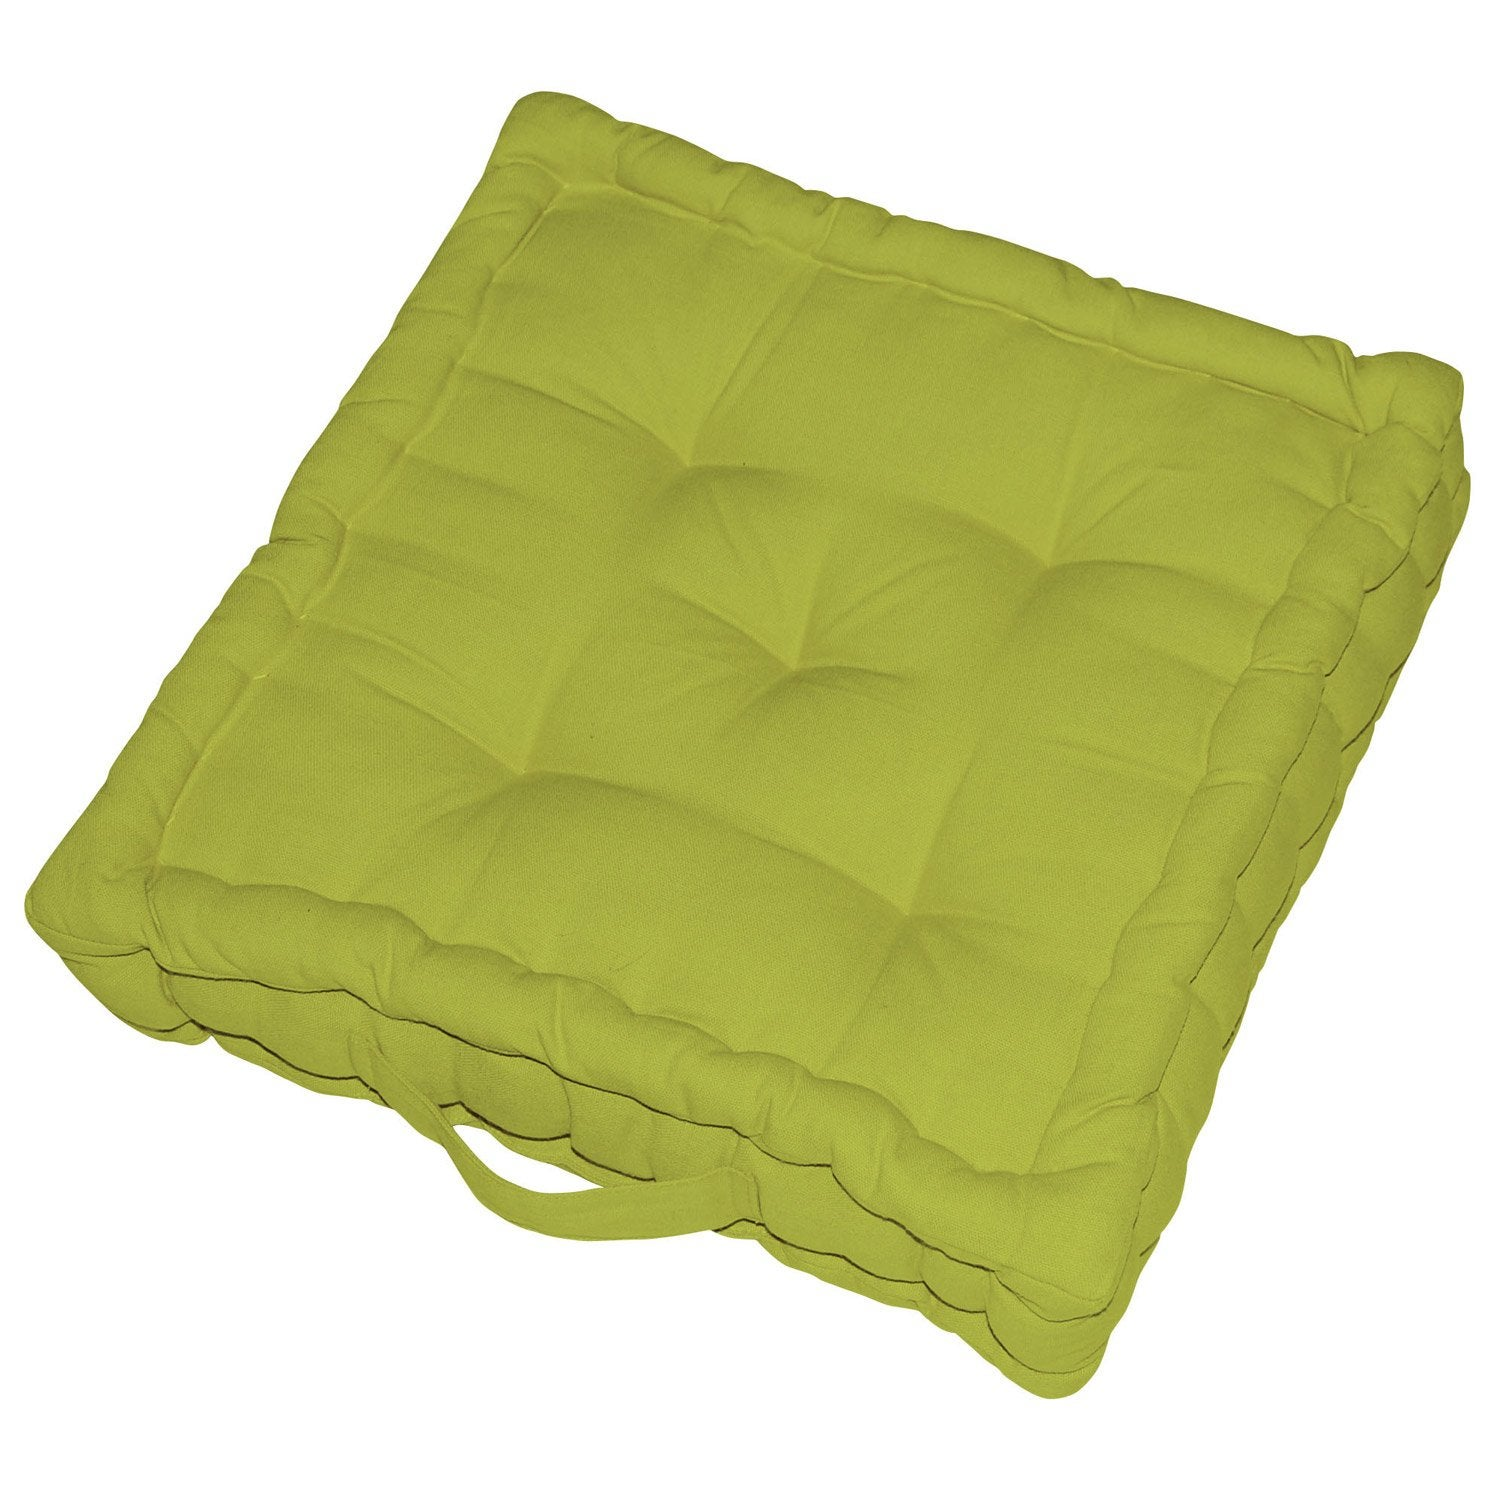 coussin de sol cl a vert pistache n 5 40 x 40 cm leroy. Black Bedroom Furniture Sets. Home Design Ideas